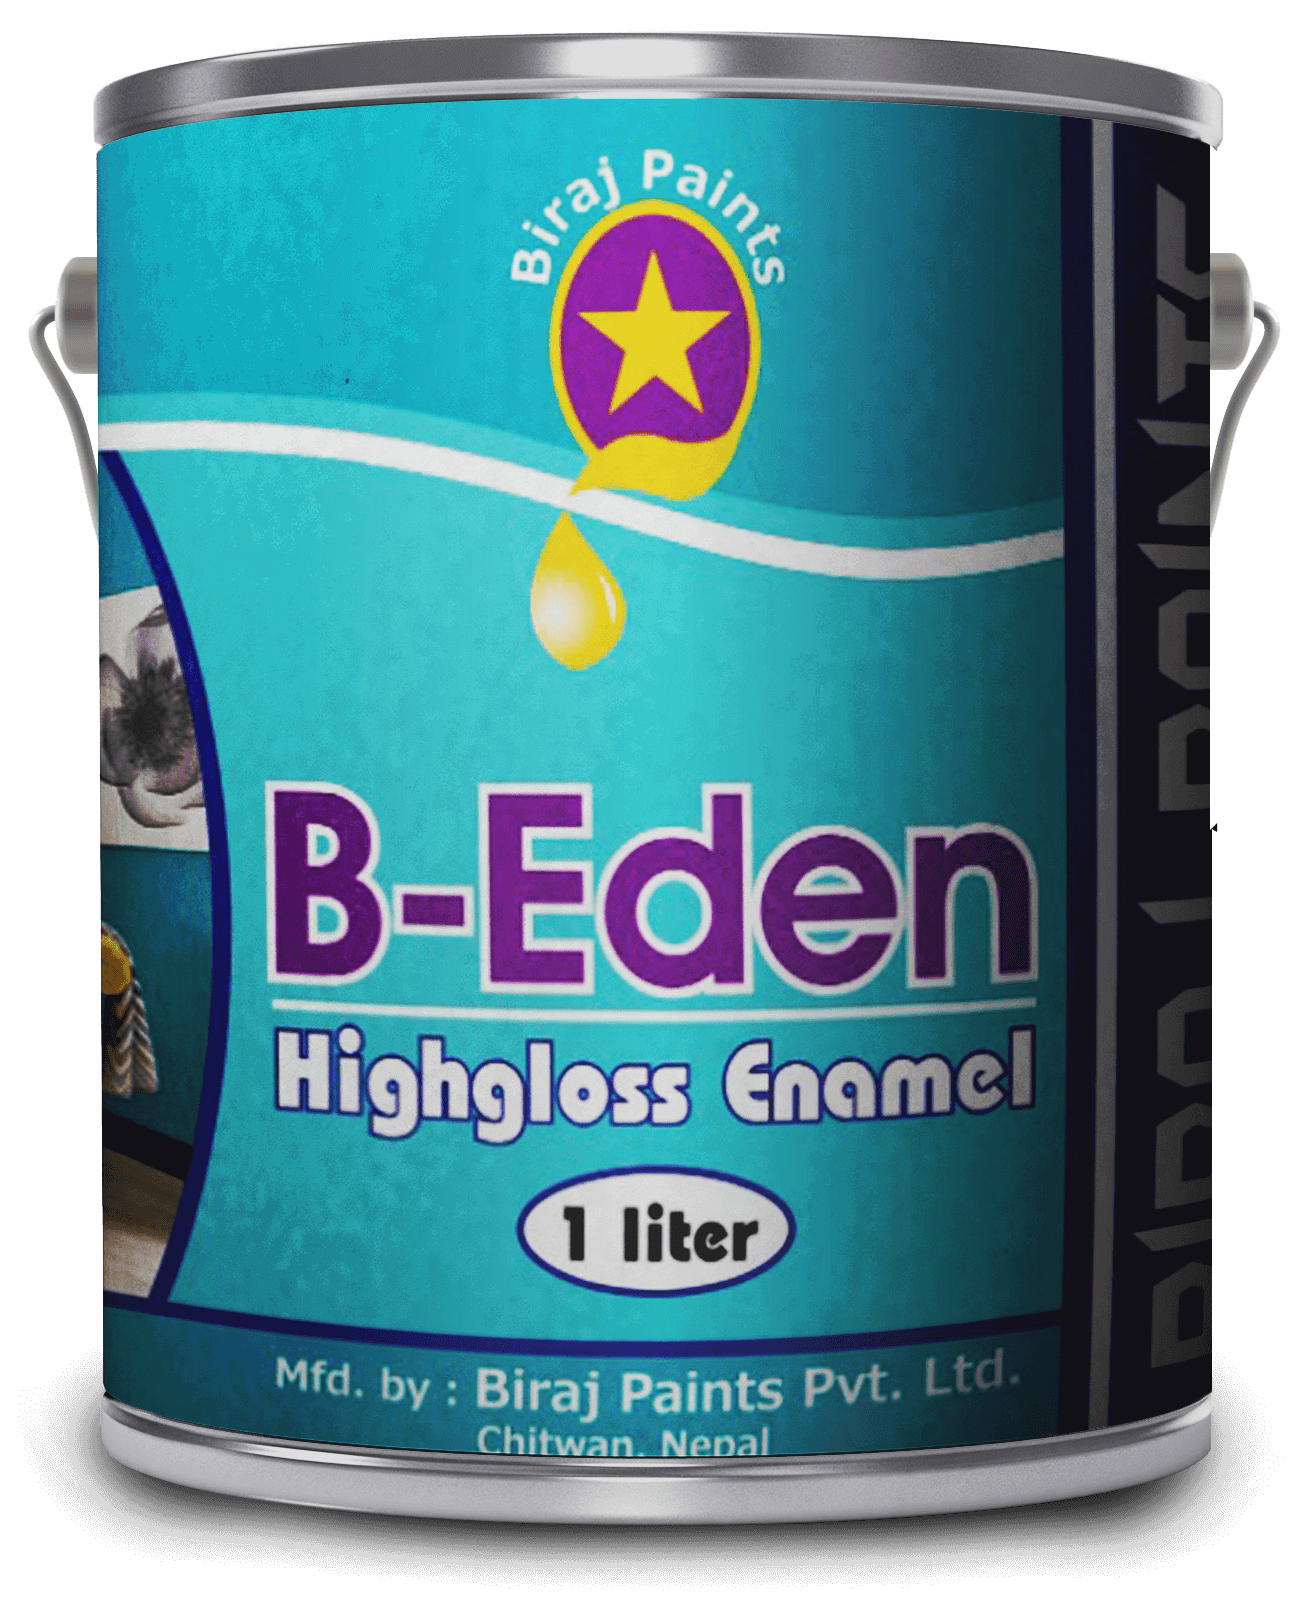 B-Eden High-gloss Enamel